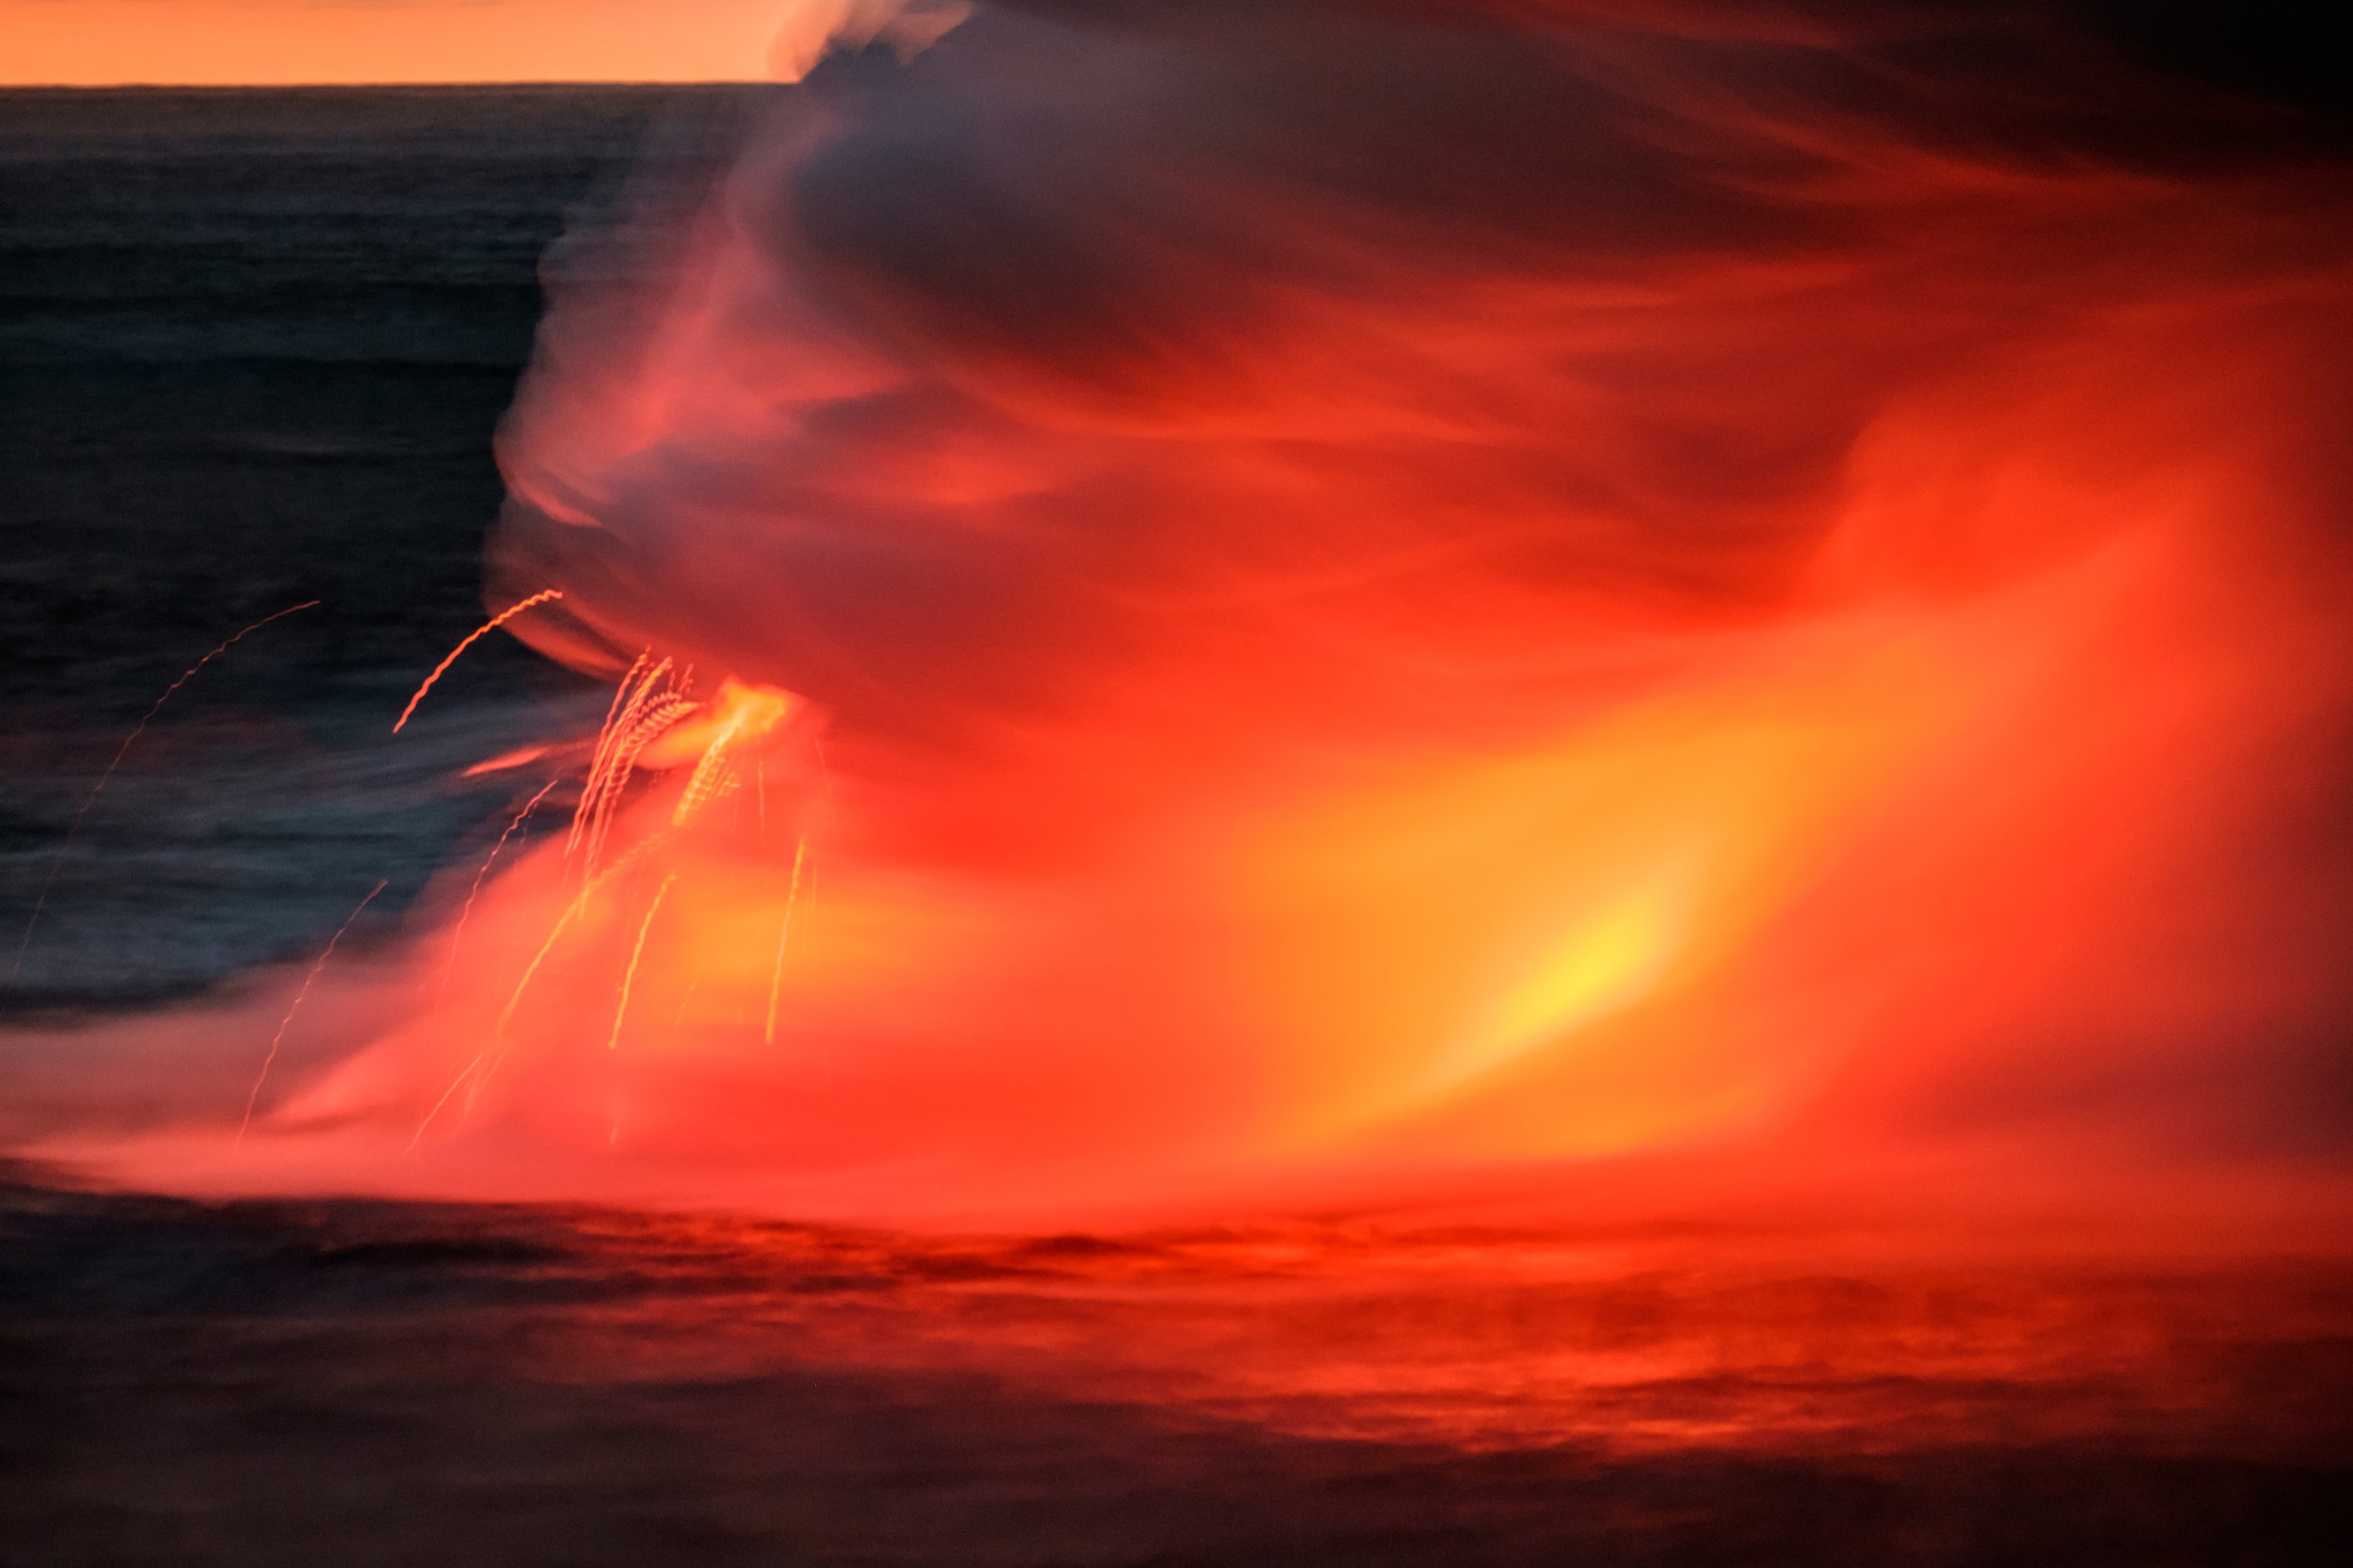 Occassionaly there would be bursts from the hot lava hitting the cold ocean water.